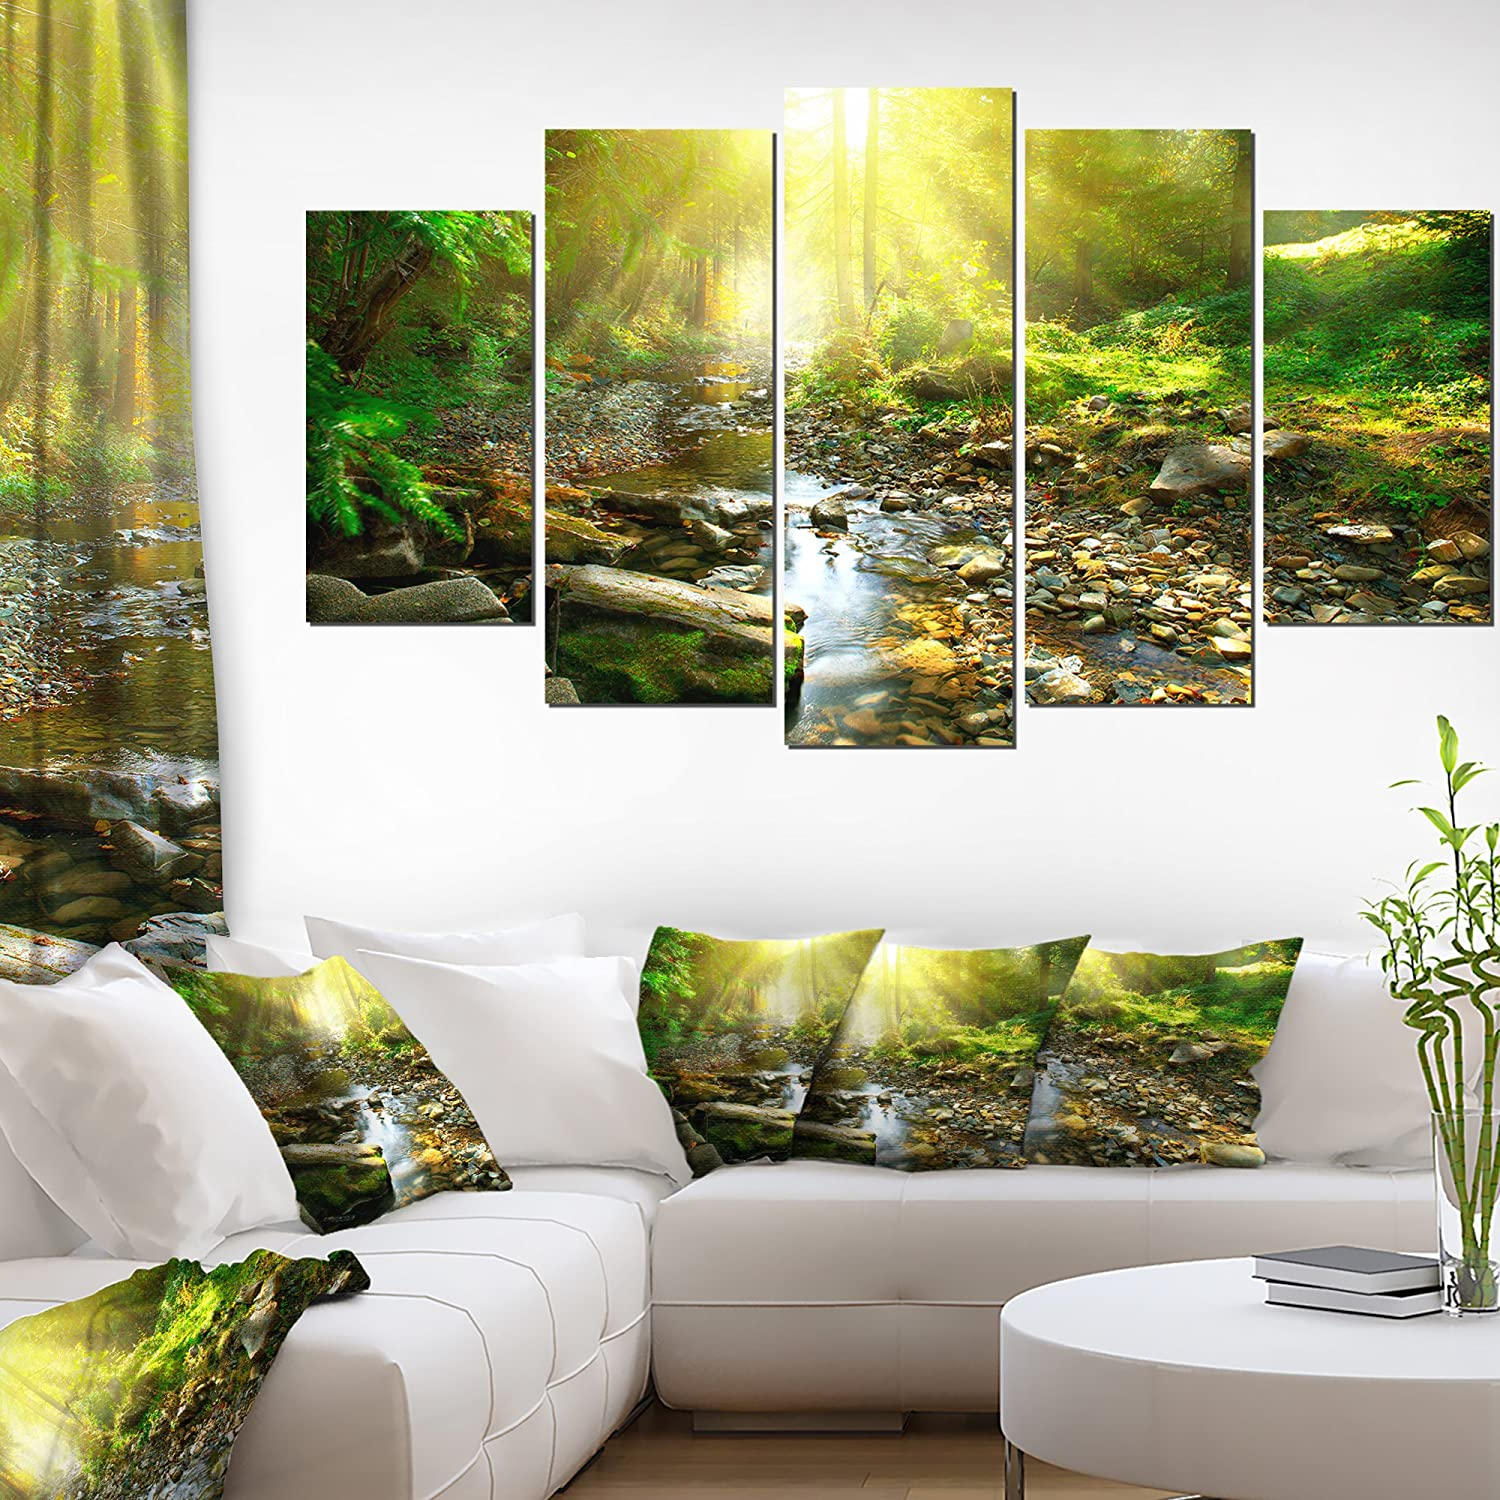 Design Art Mountain Stream in Forest-Landscape Photo Canvas Print-60x32 5 Piece, 60x32-5 Panels Diamond Shape Green